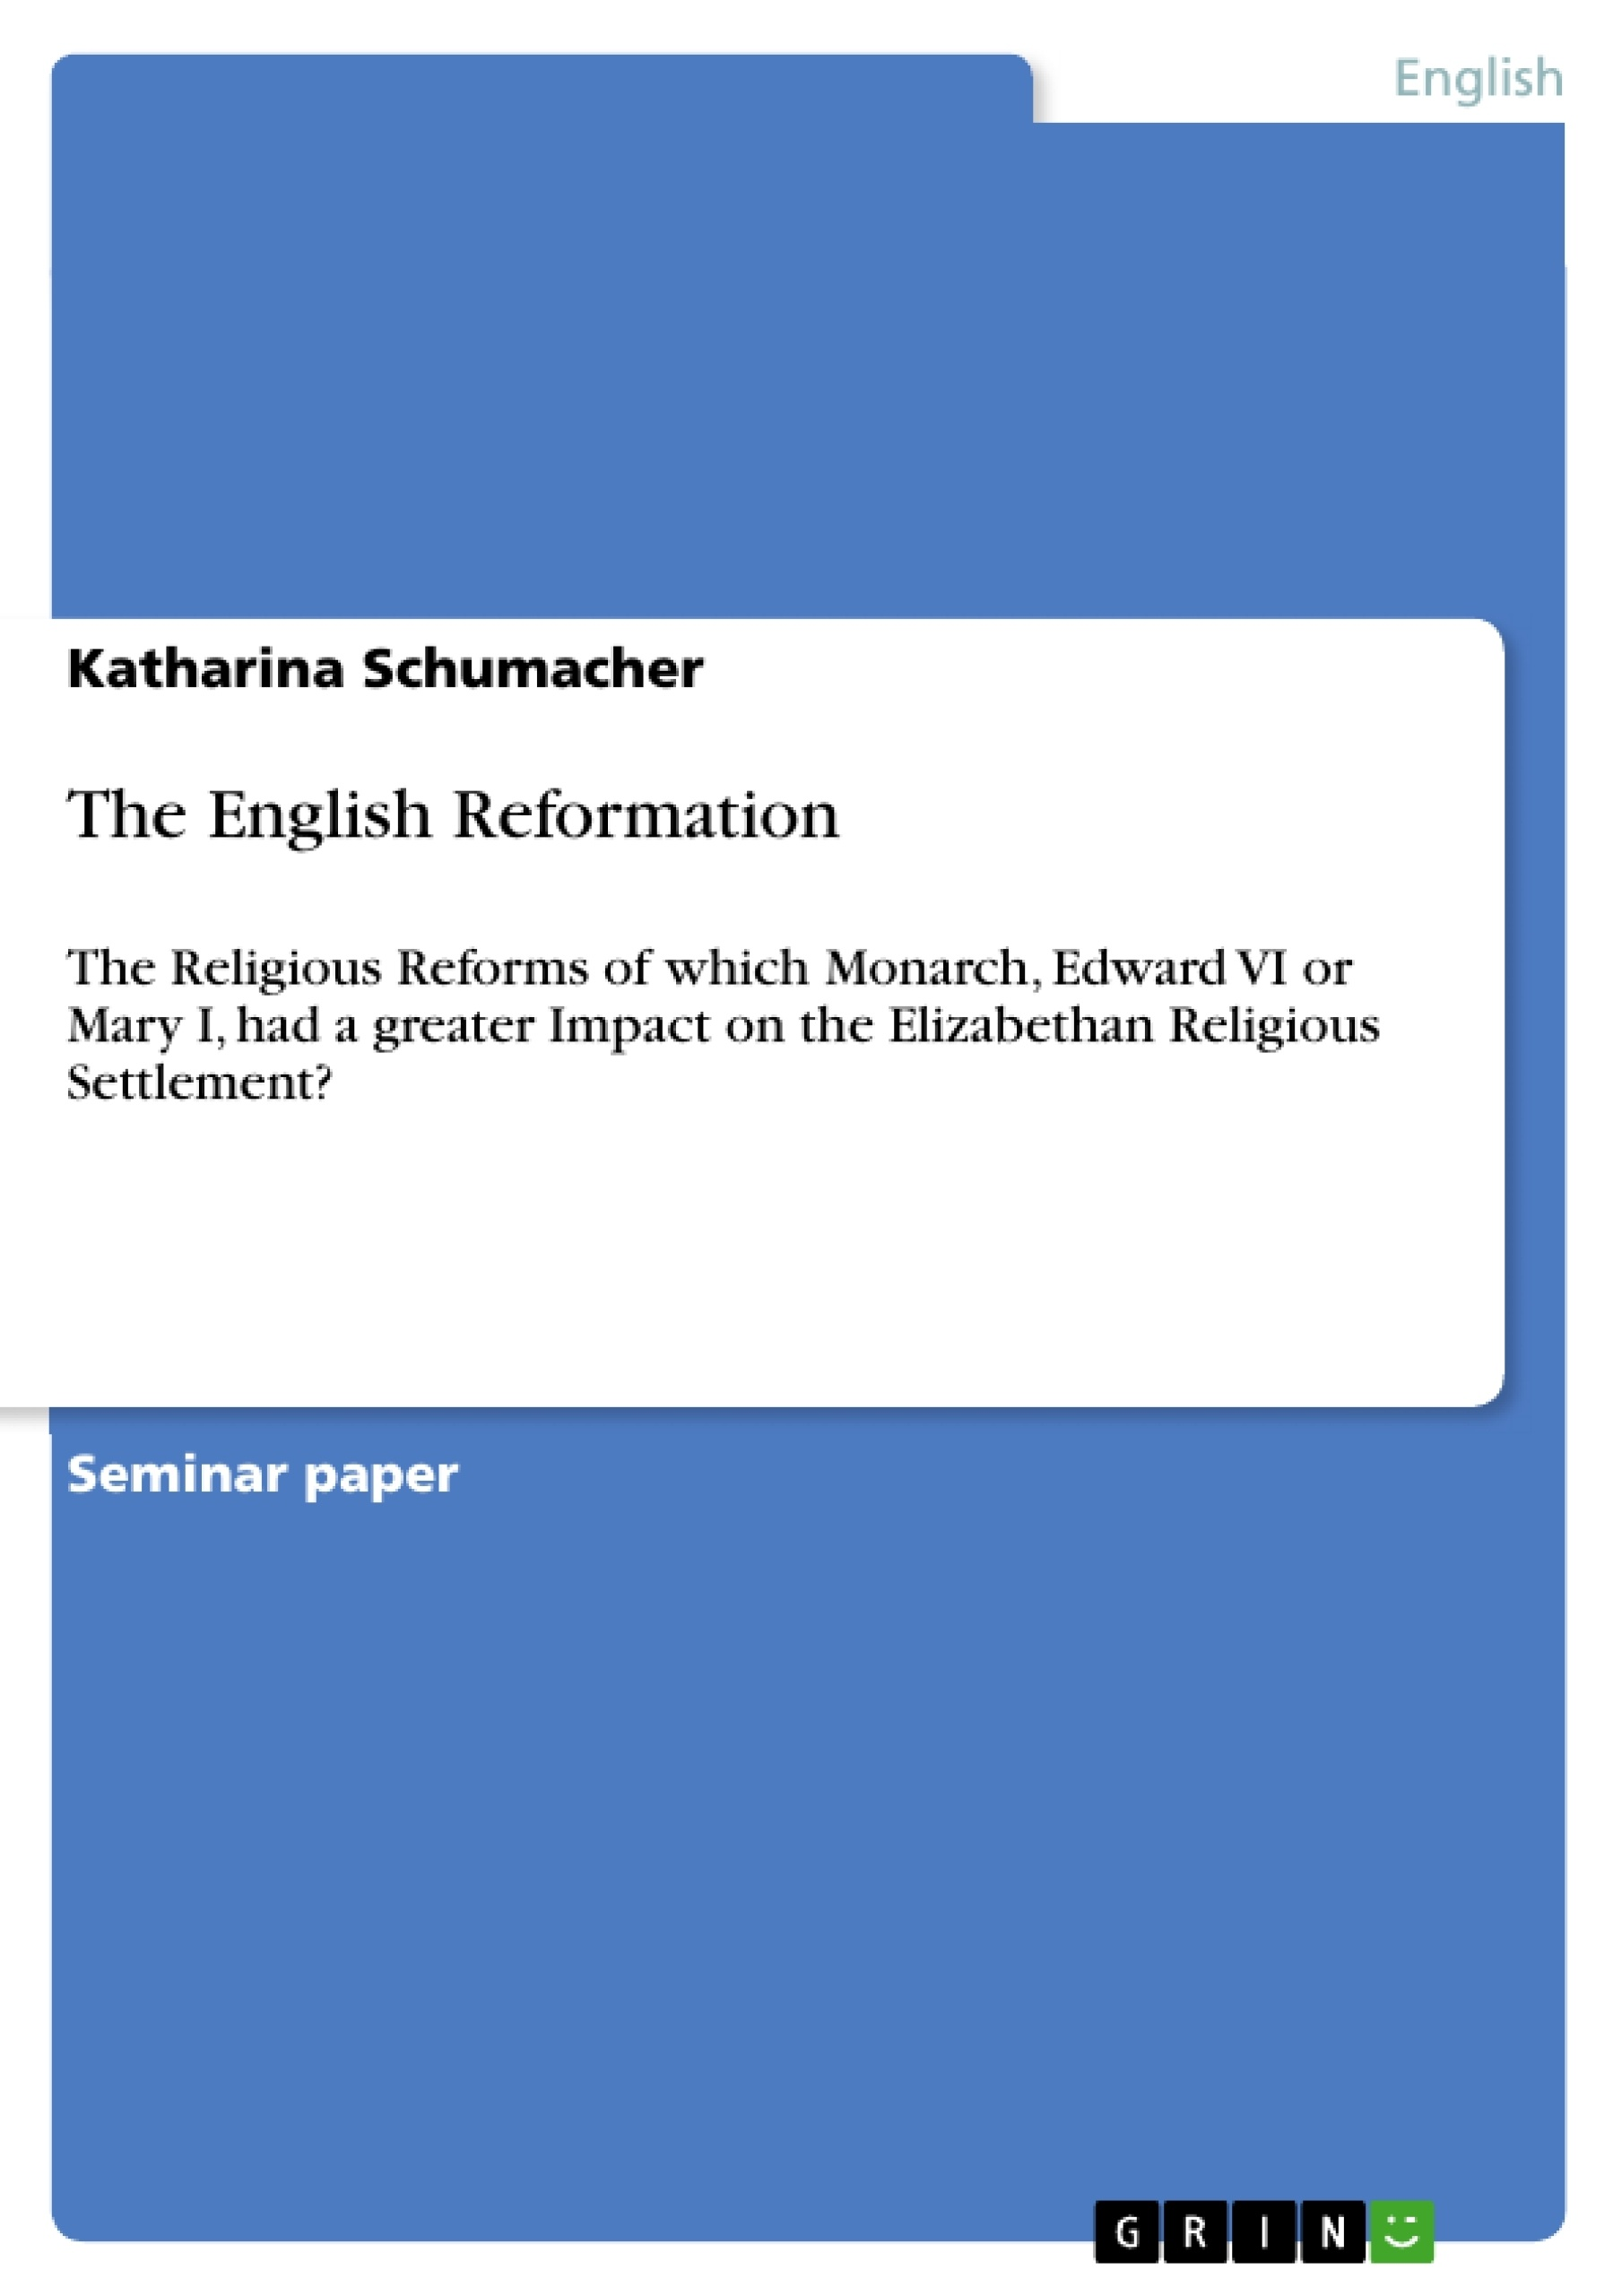 english reformation essay Protestant reformation in england: influences & causes  which helped bring about the english reformation without the reformation of 1534, queen elizabeth і could.